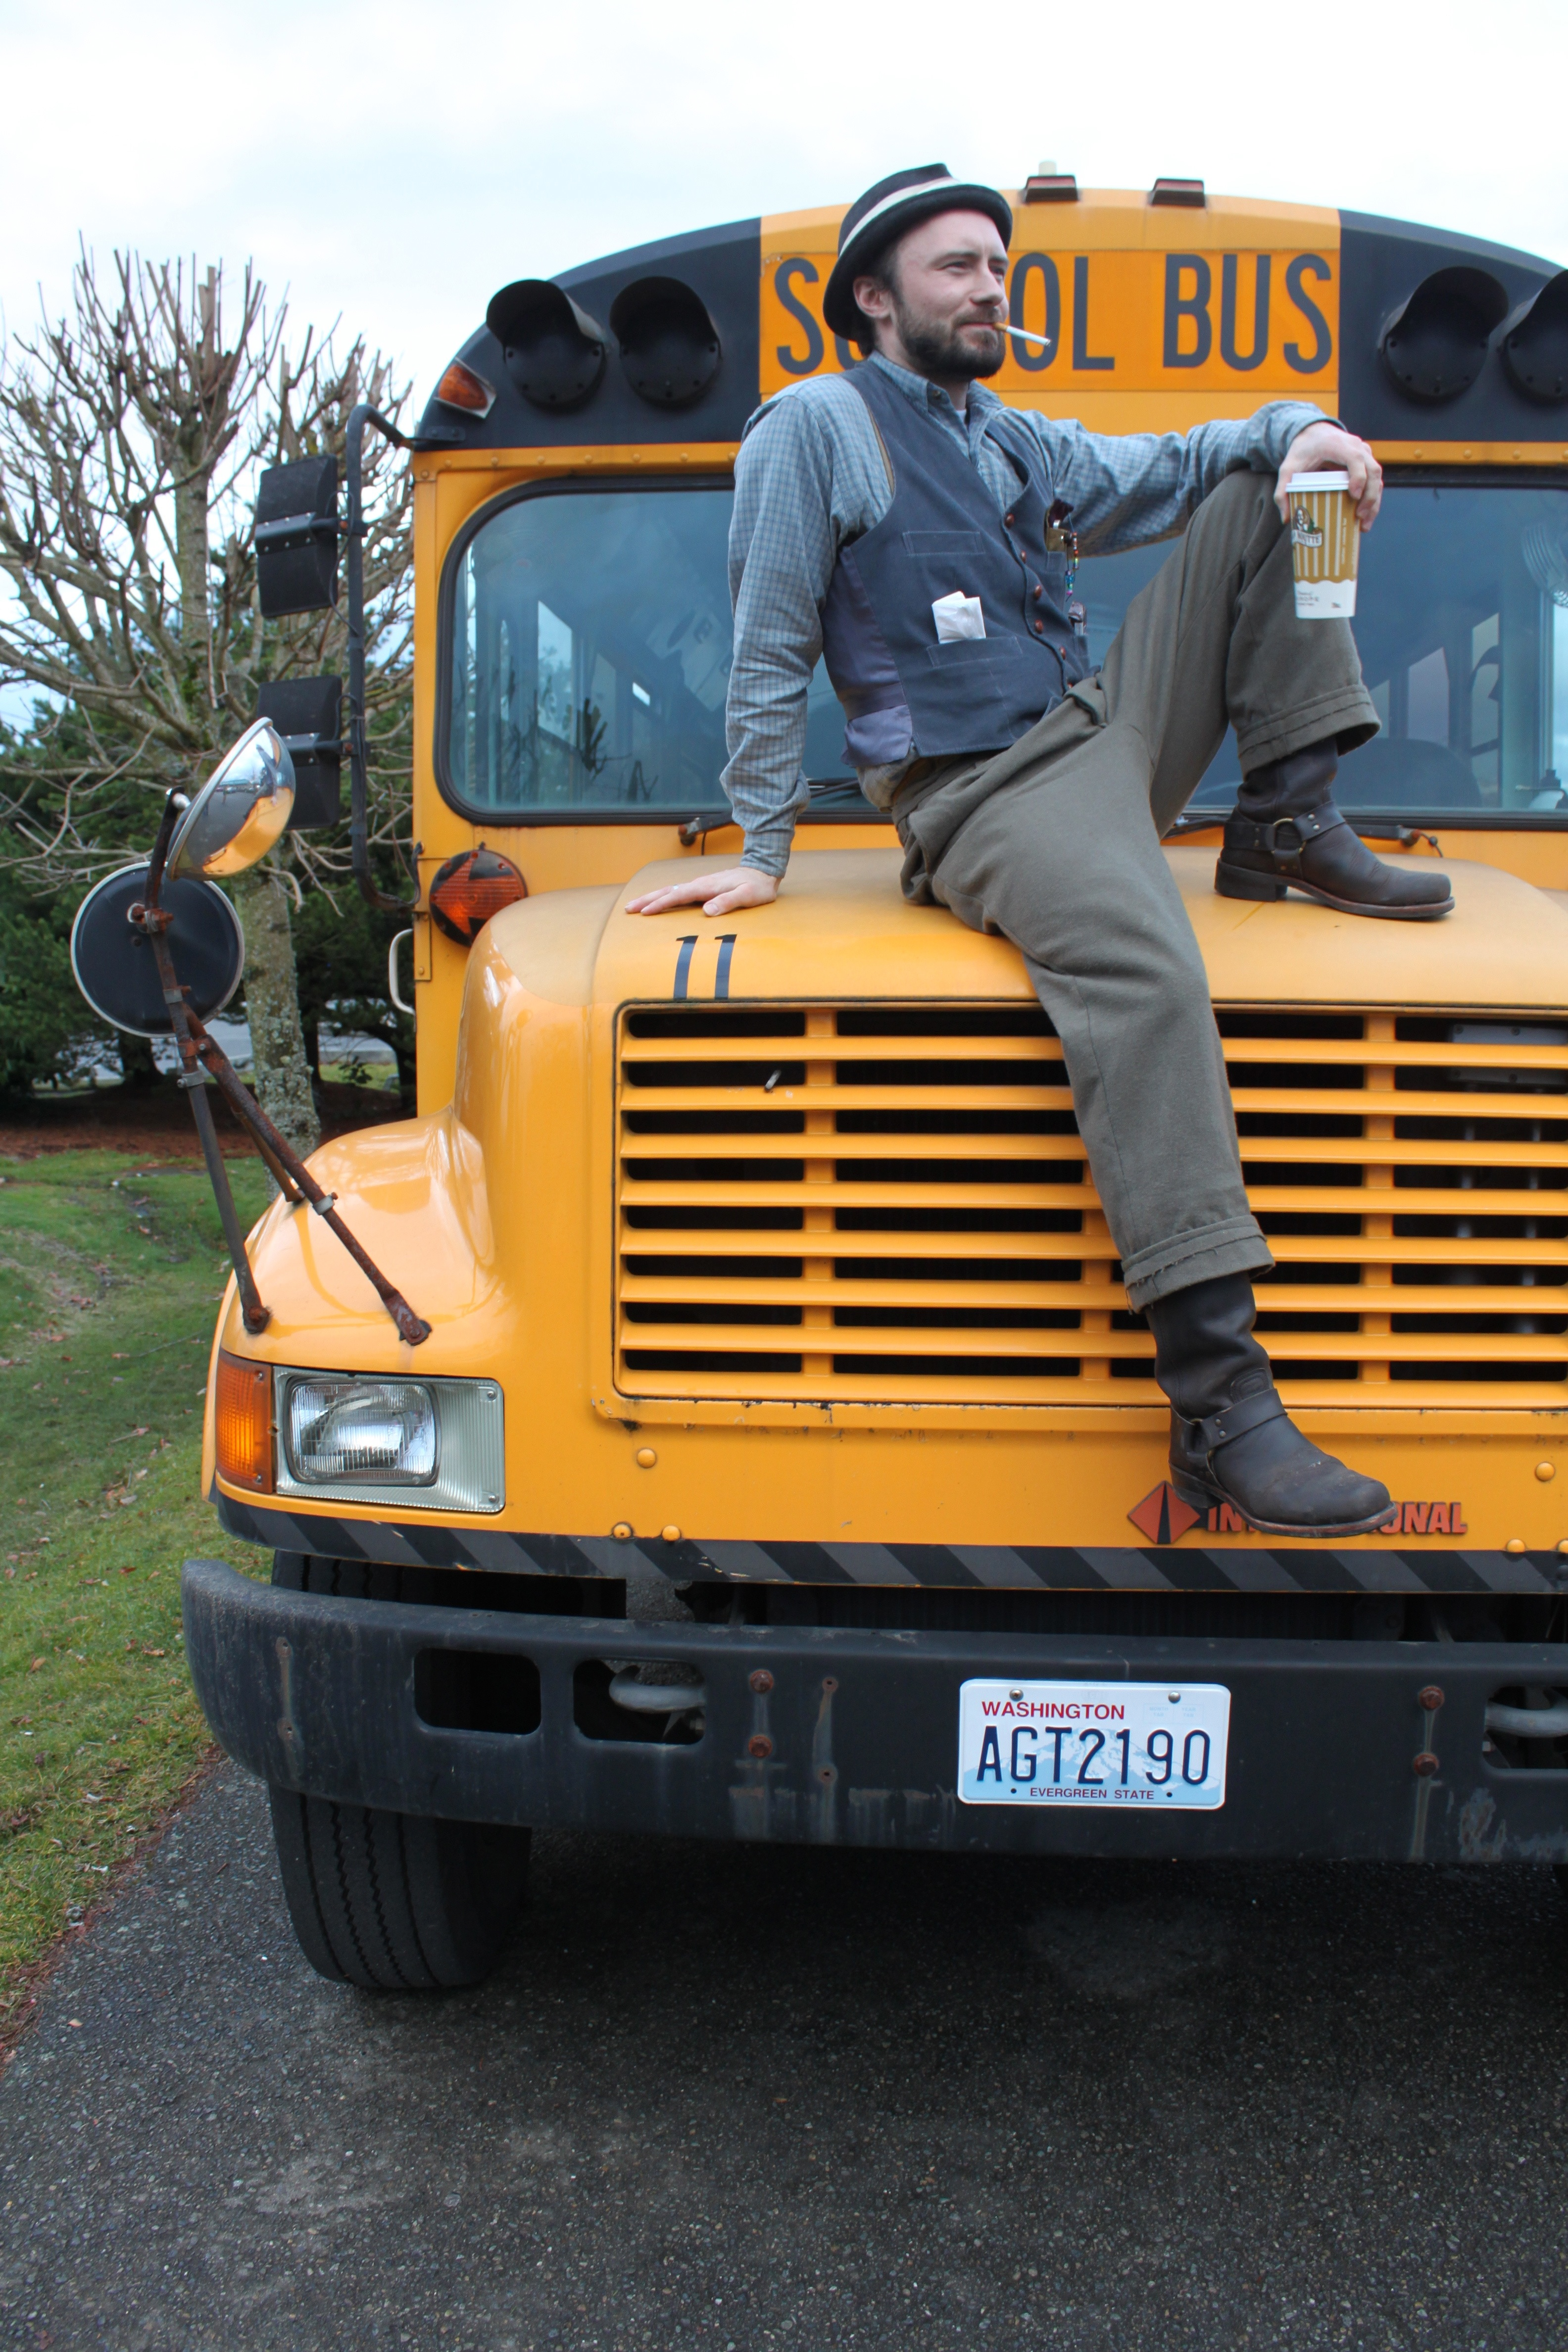 Seattle to portland craigslist rideshare in a school bus flickr photo sharing for Craigslist tacoma farm and garden